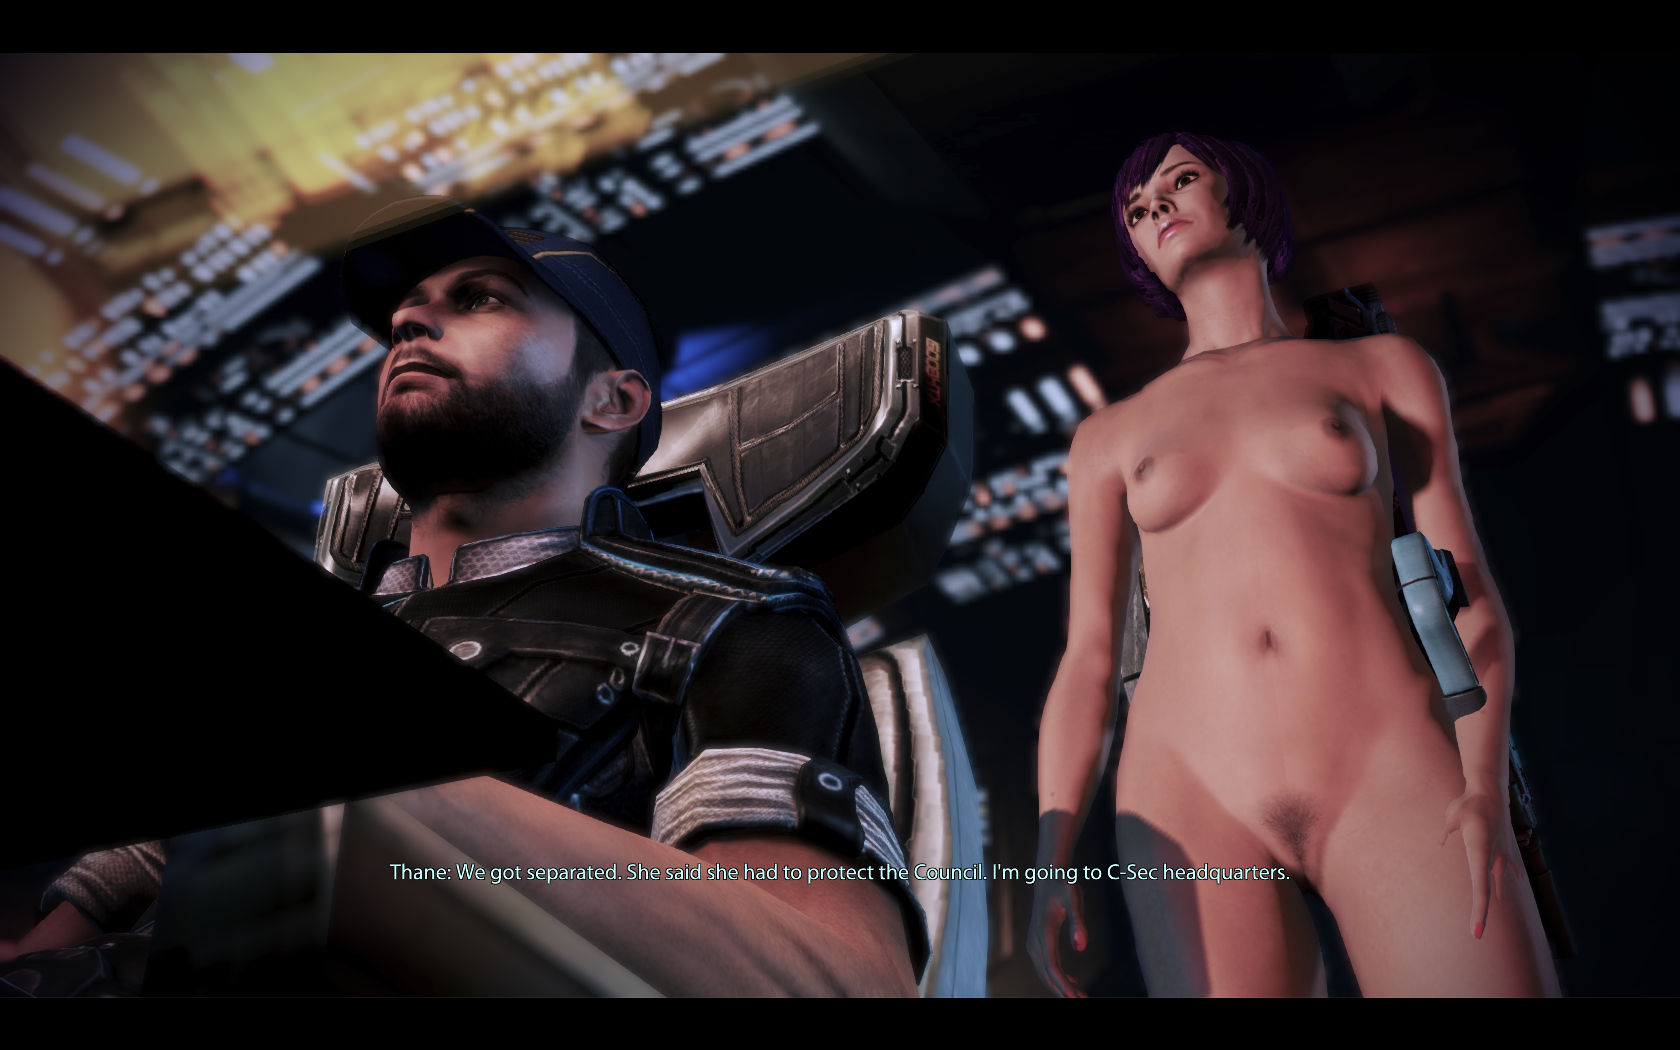 Mass effect 2 naked cheat hentai gallery